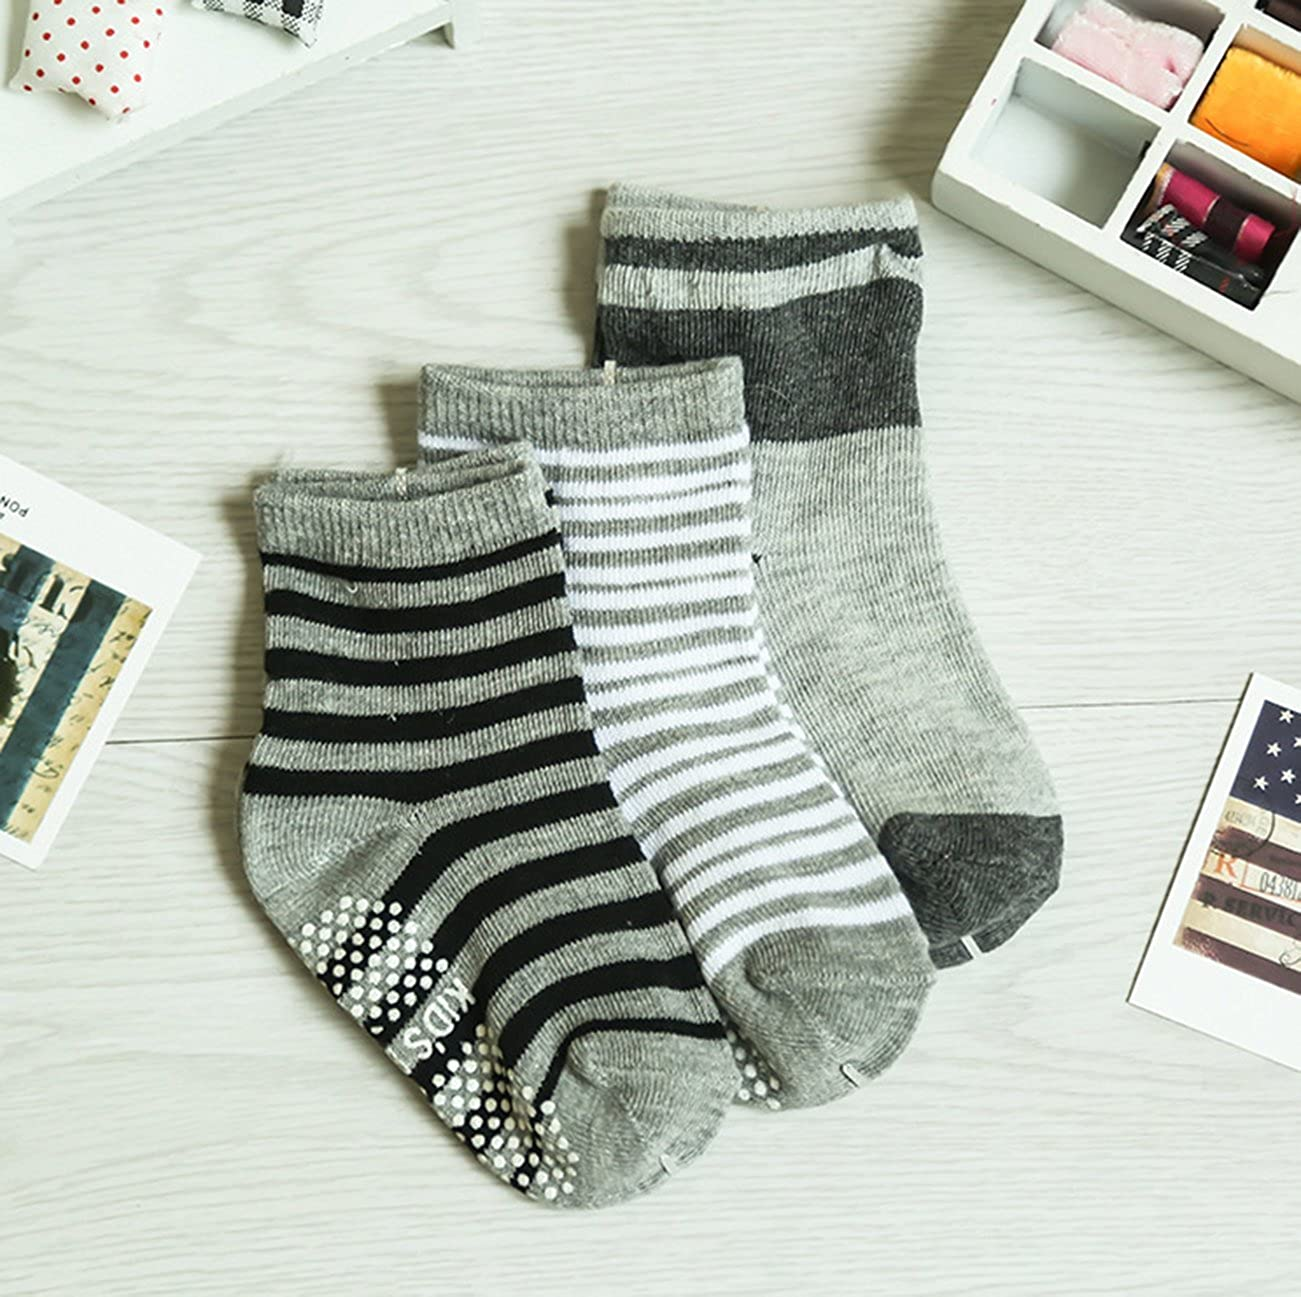 12 Colors 12 Pairs 1-3 Years Toddler Baby Anti Slip Soft Cotton Socks Stretch Knit Stripes Star Crew Socks